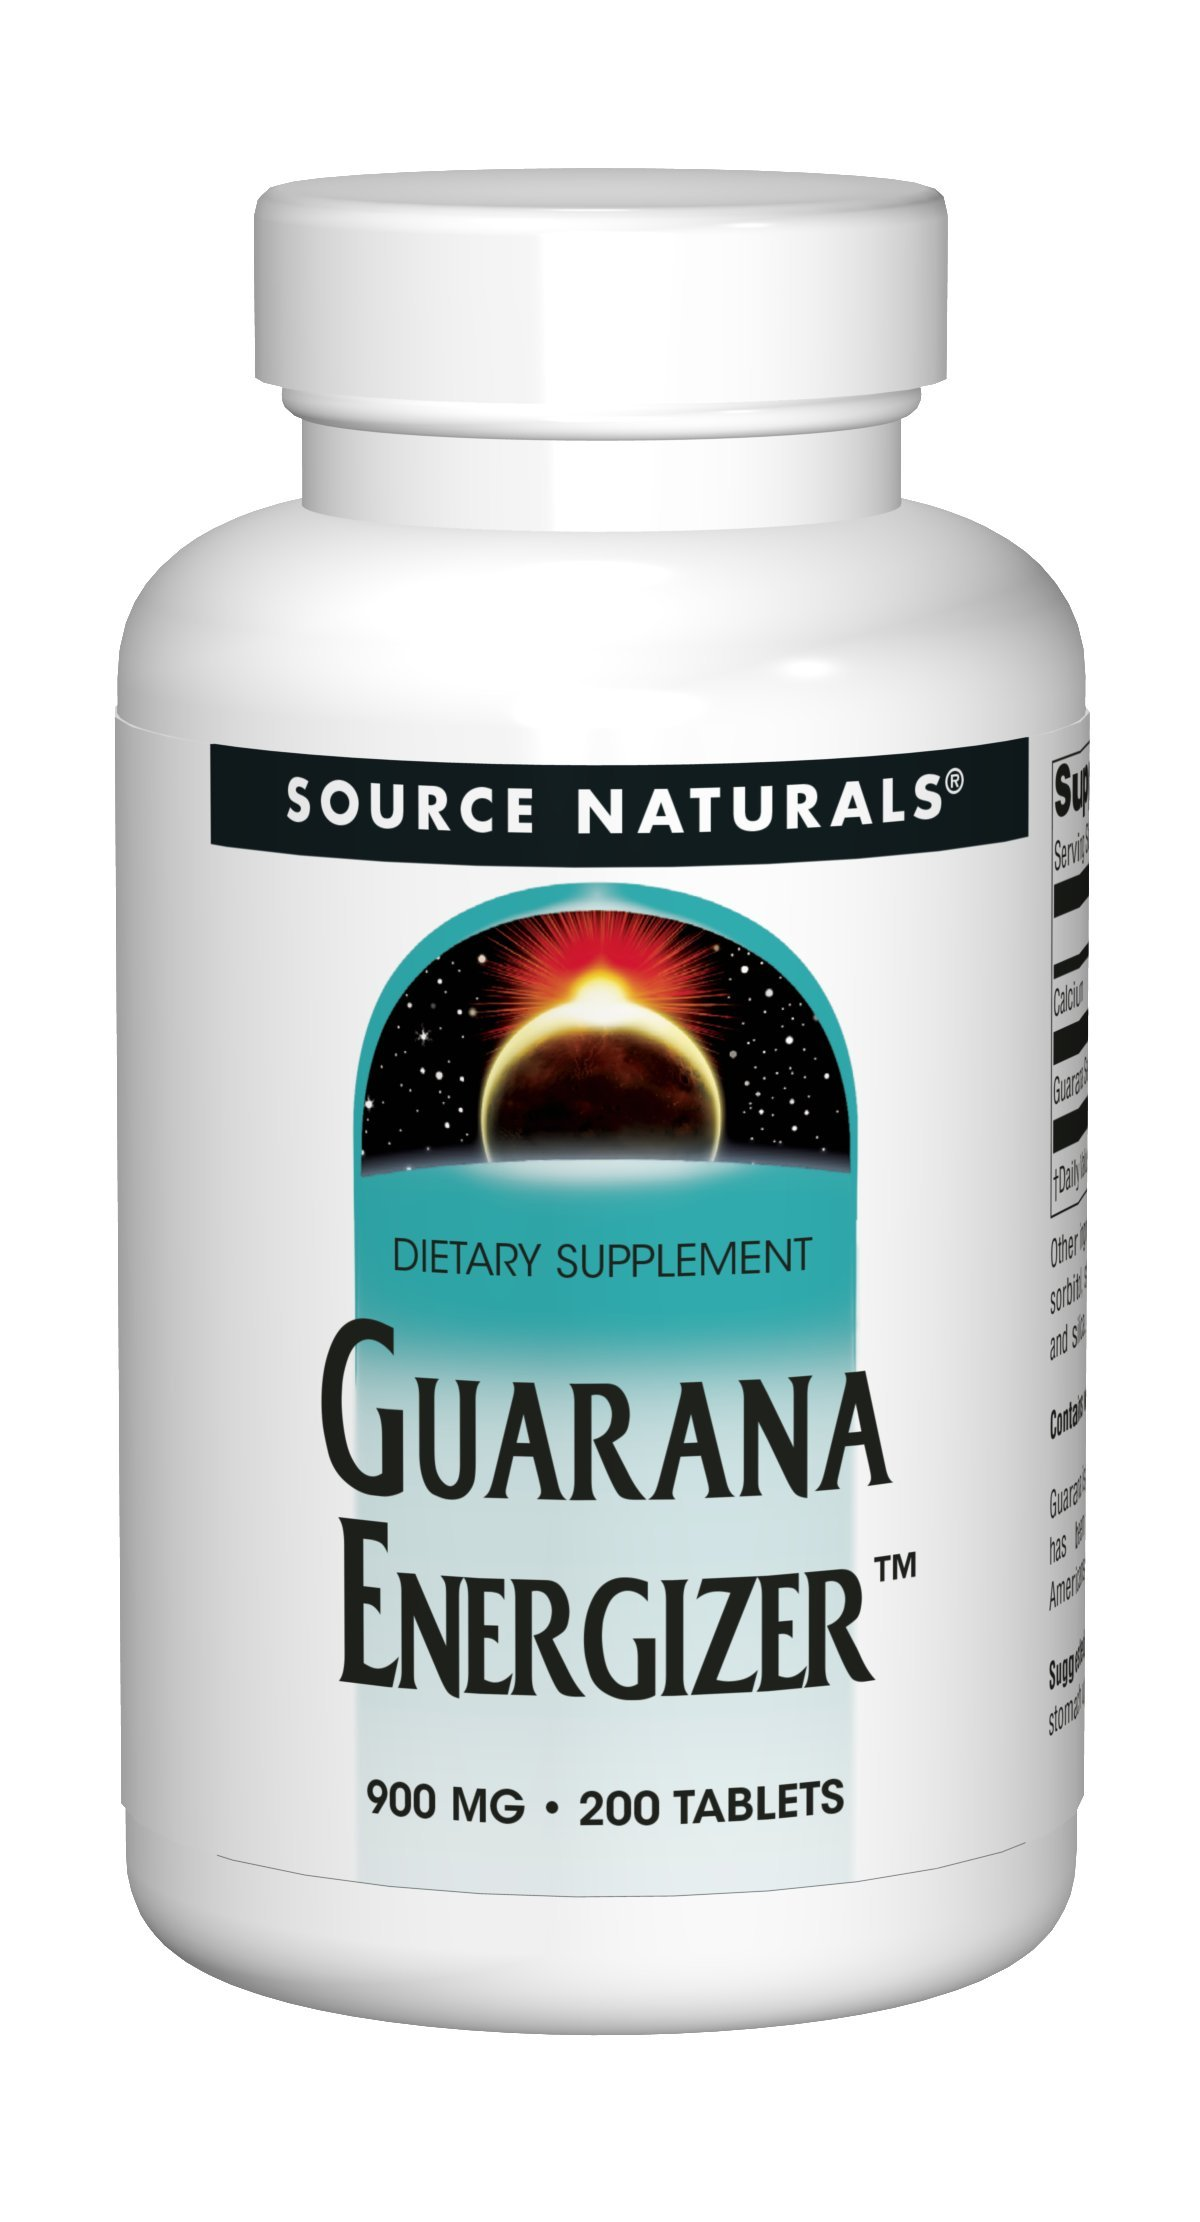 Source Naturals Guarana Energizer 900mg Pure Brazilian Herbal Caffeine Supplement - Natural, Slow Release Of Steady Energy - With Calcium - 200 Tablets by Source Naturals